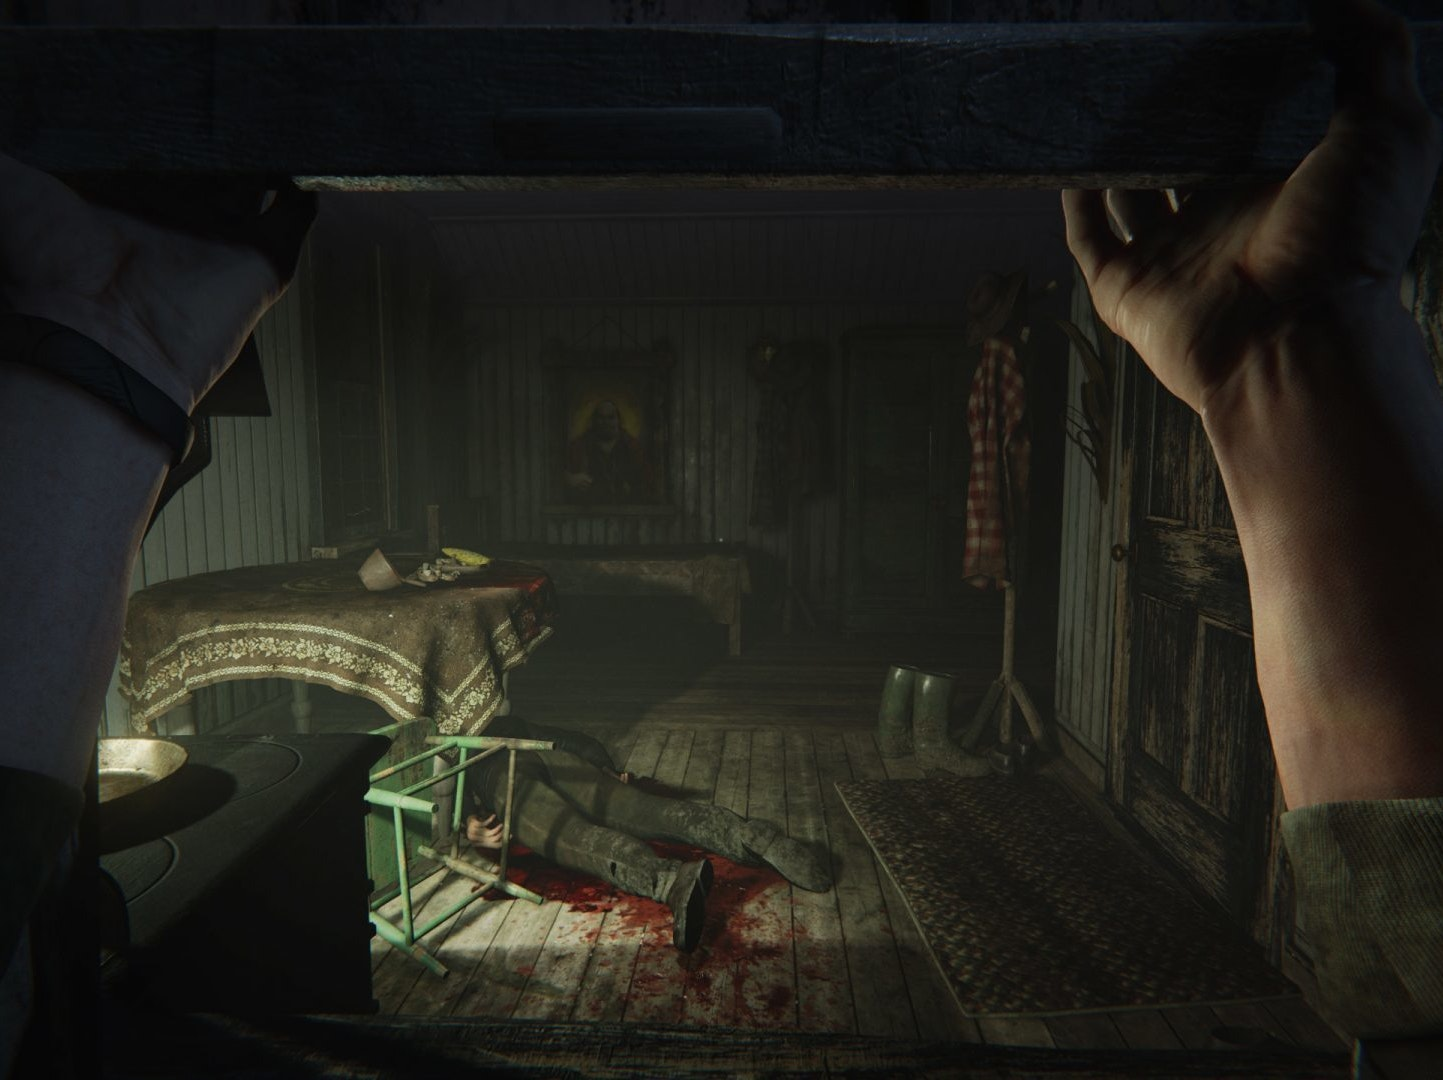 The Scariest Video Game of 2016 Doesn't Come Out Until 2017